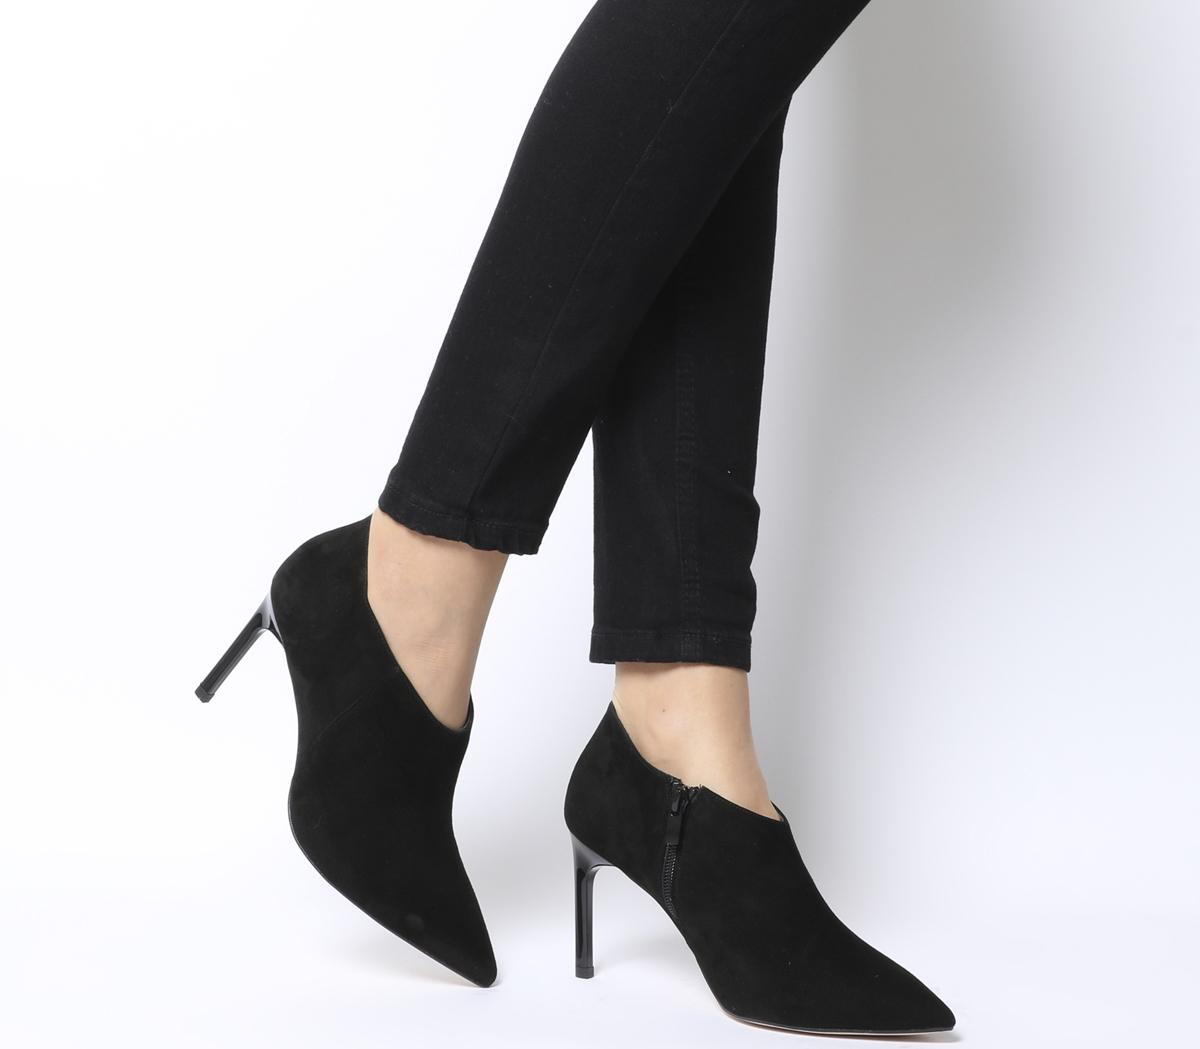 Mairead Sleek Heel Shoeboots